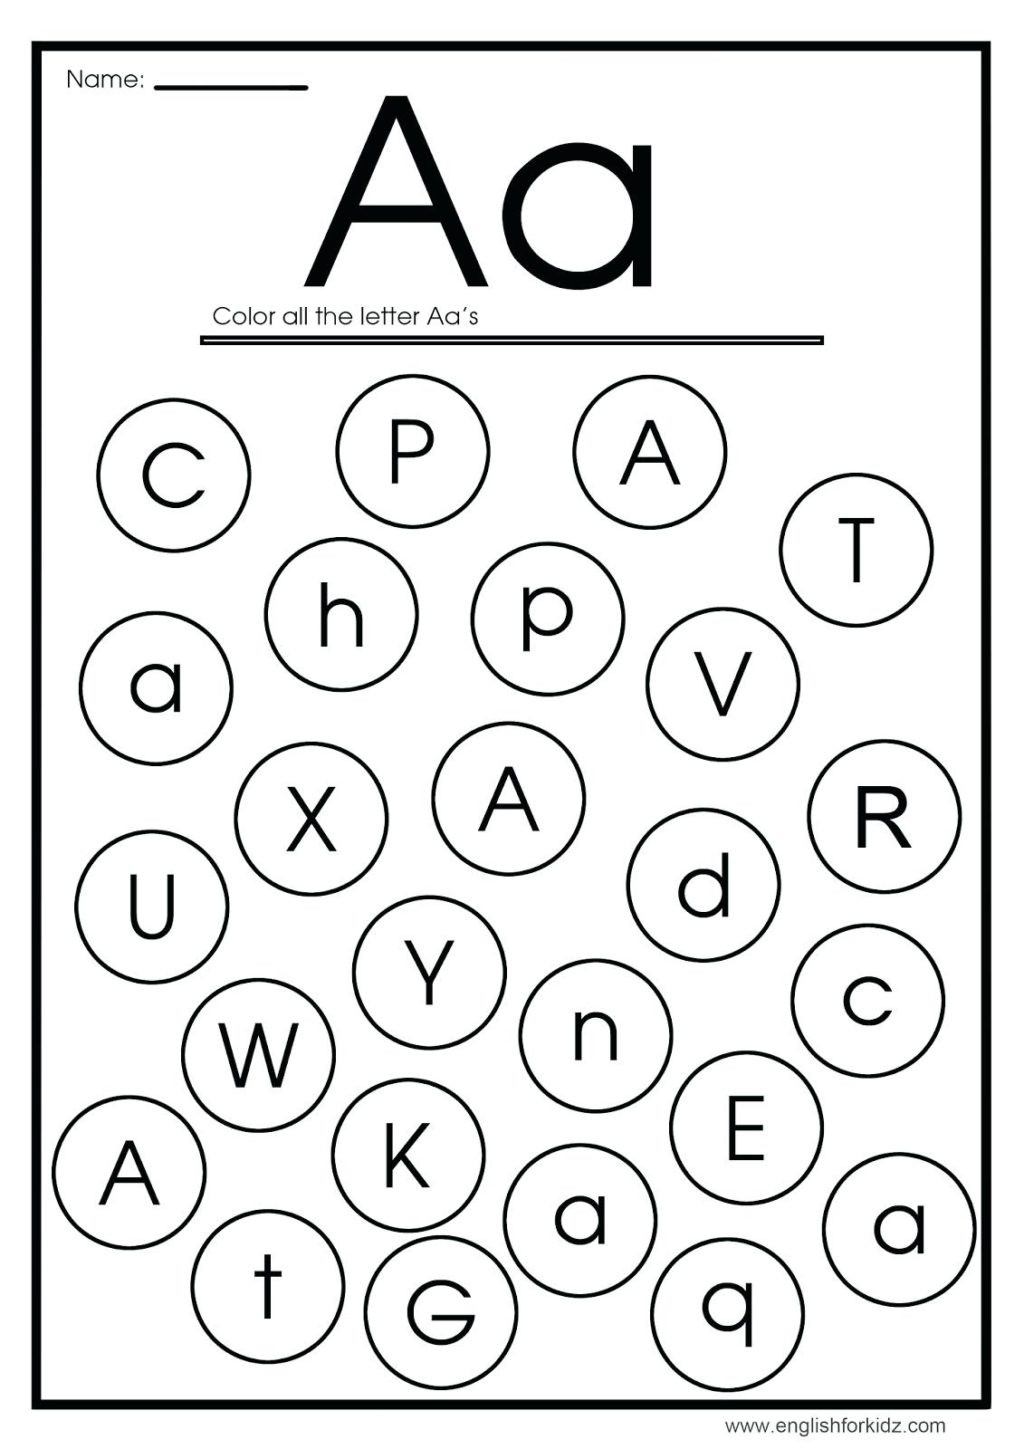 Initial Letter sounds Worksheets